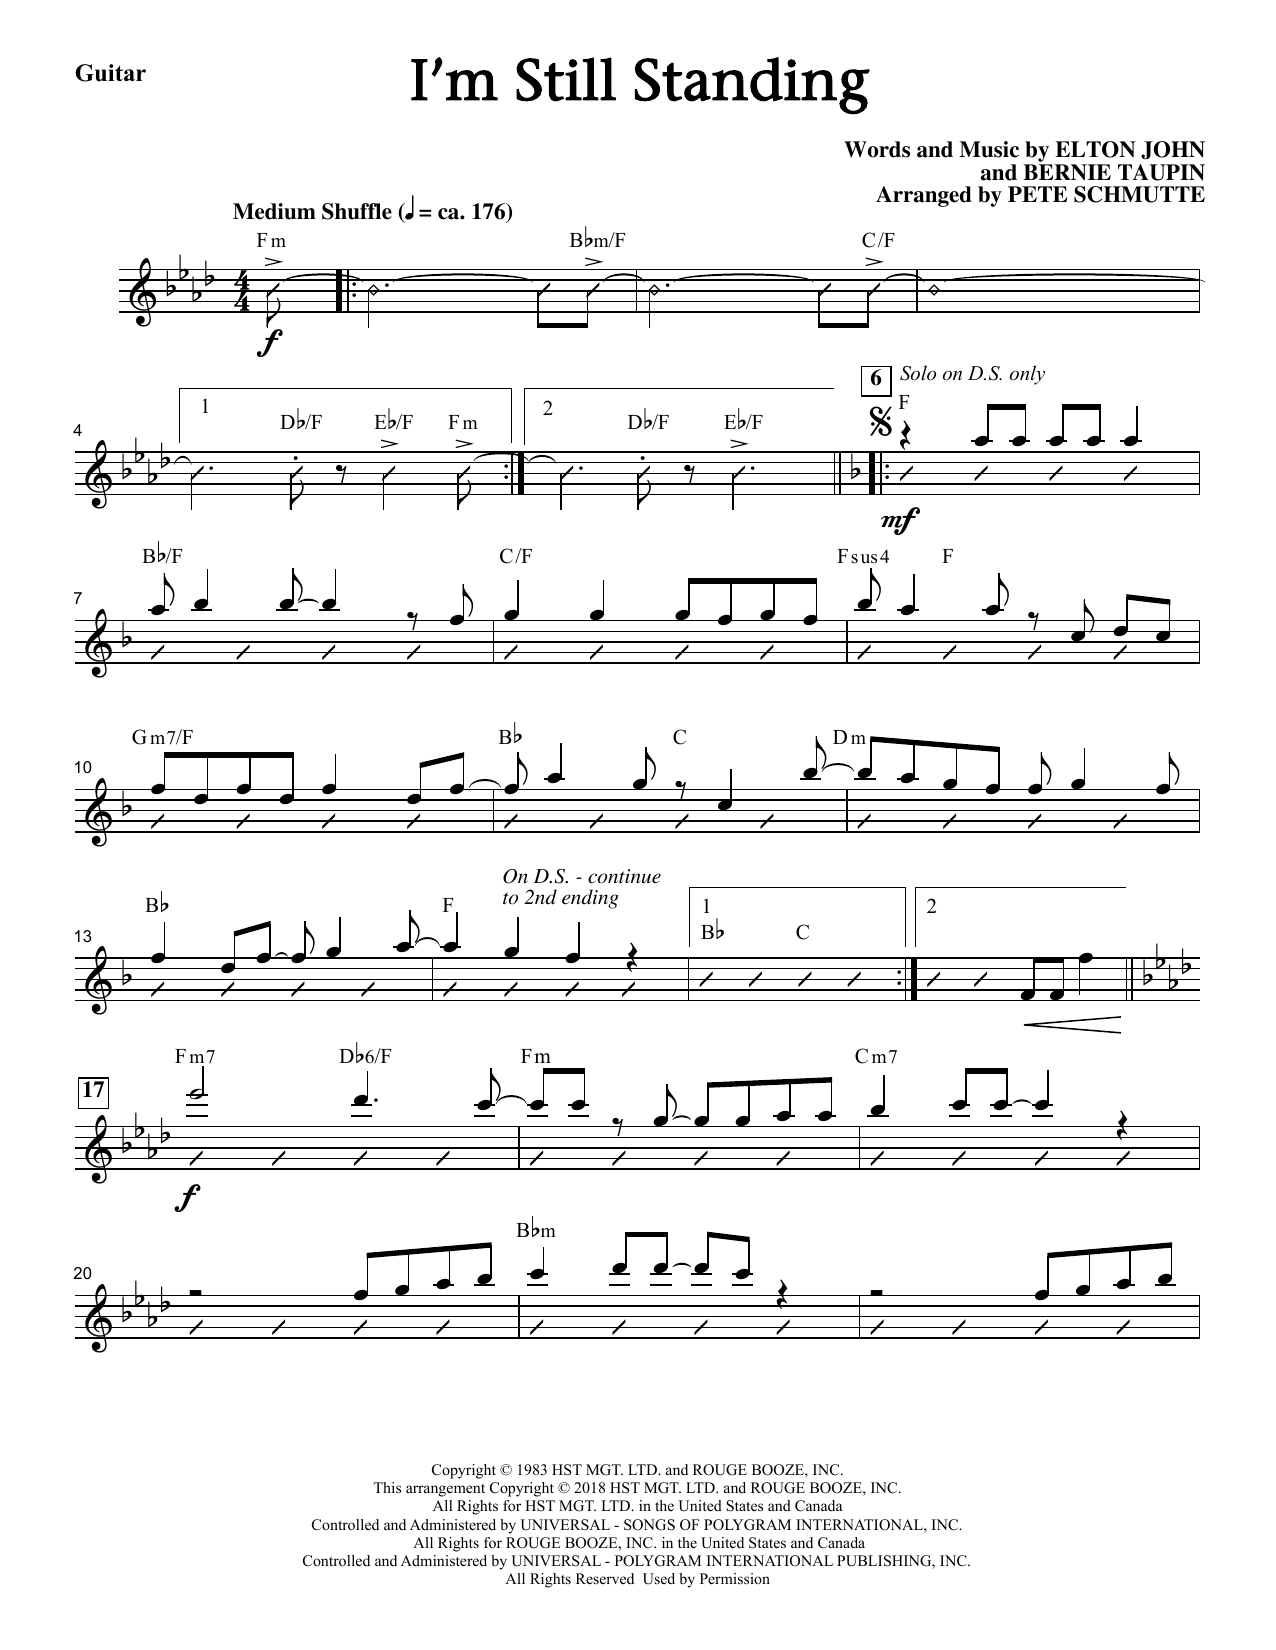 Elton John I'm Still Standing (arr. Pete Schmutte) - Guitar sheet music notes and chords